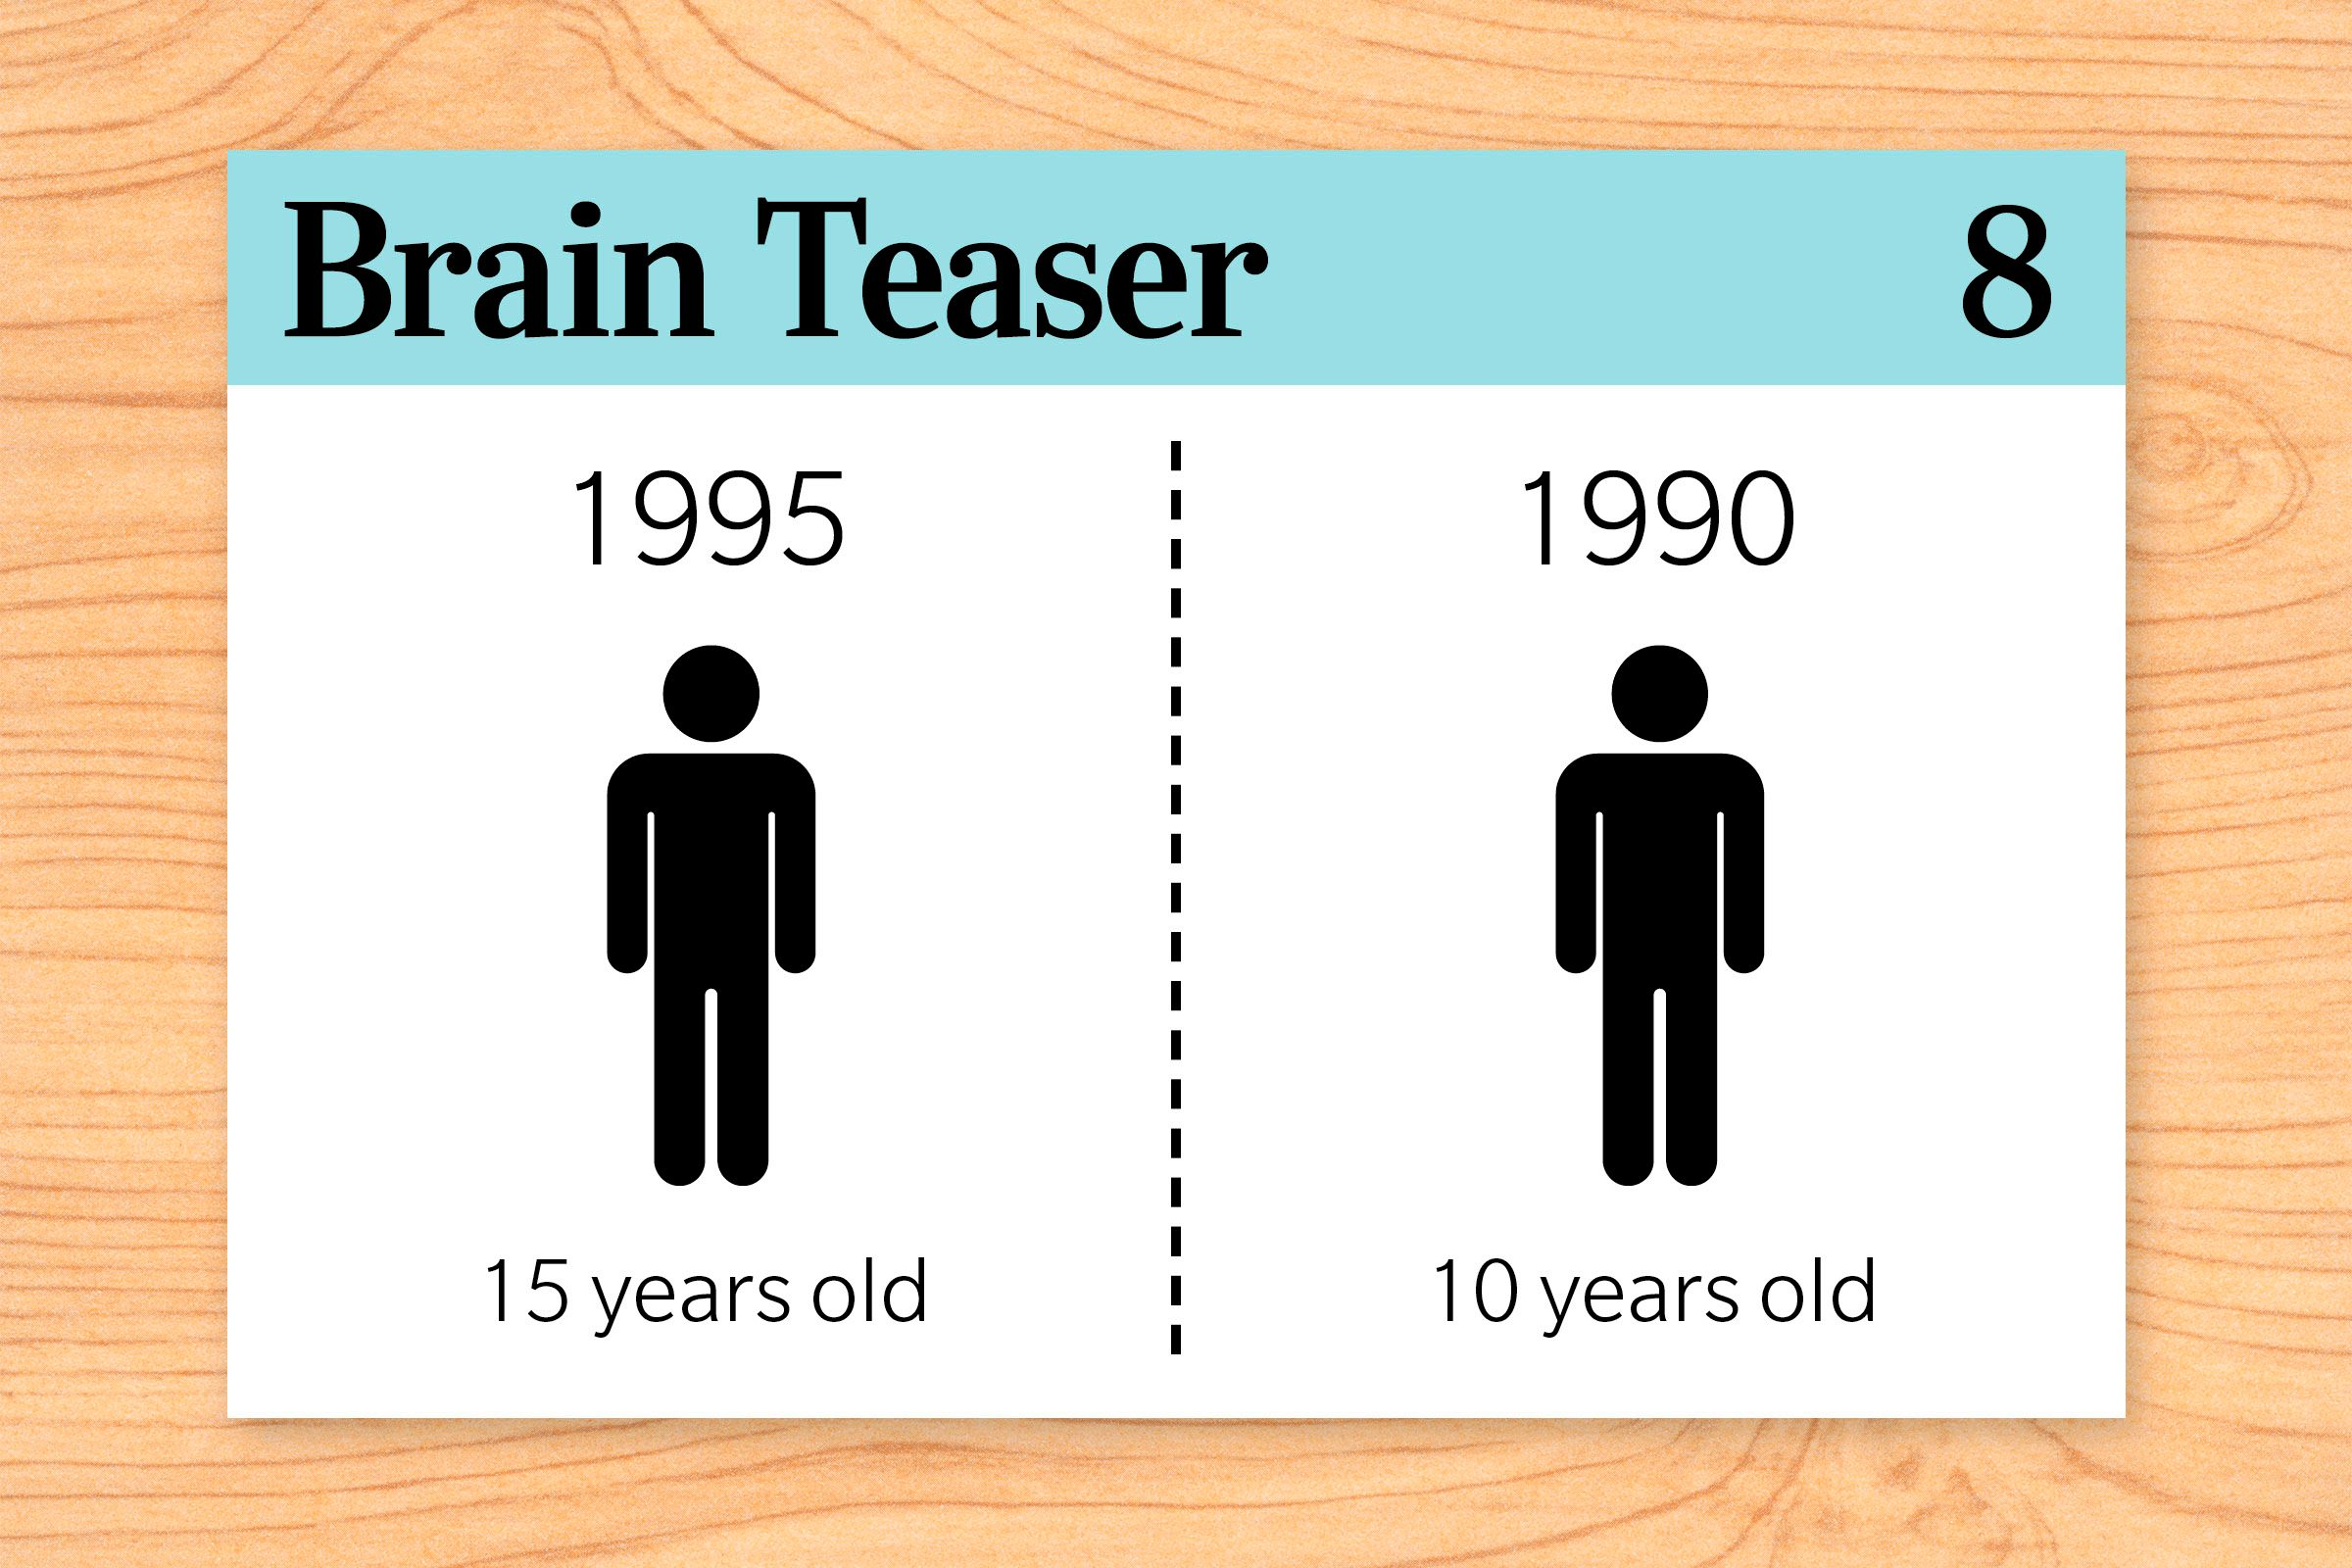 In 1990, a person is 15 years old. In 1995, that same person is 10 years old. How can this be?